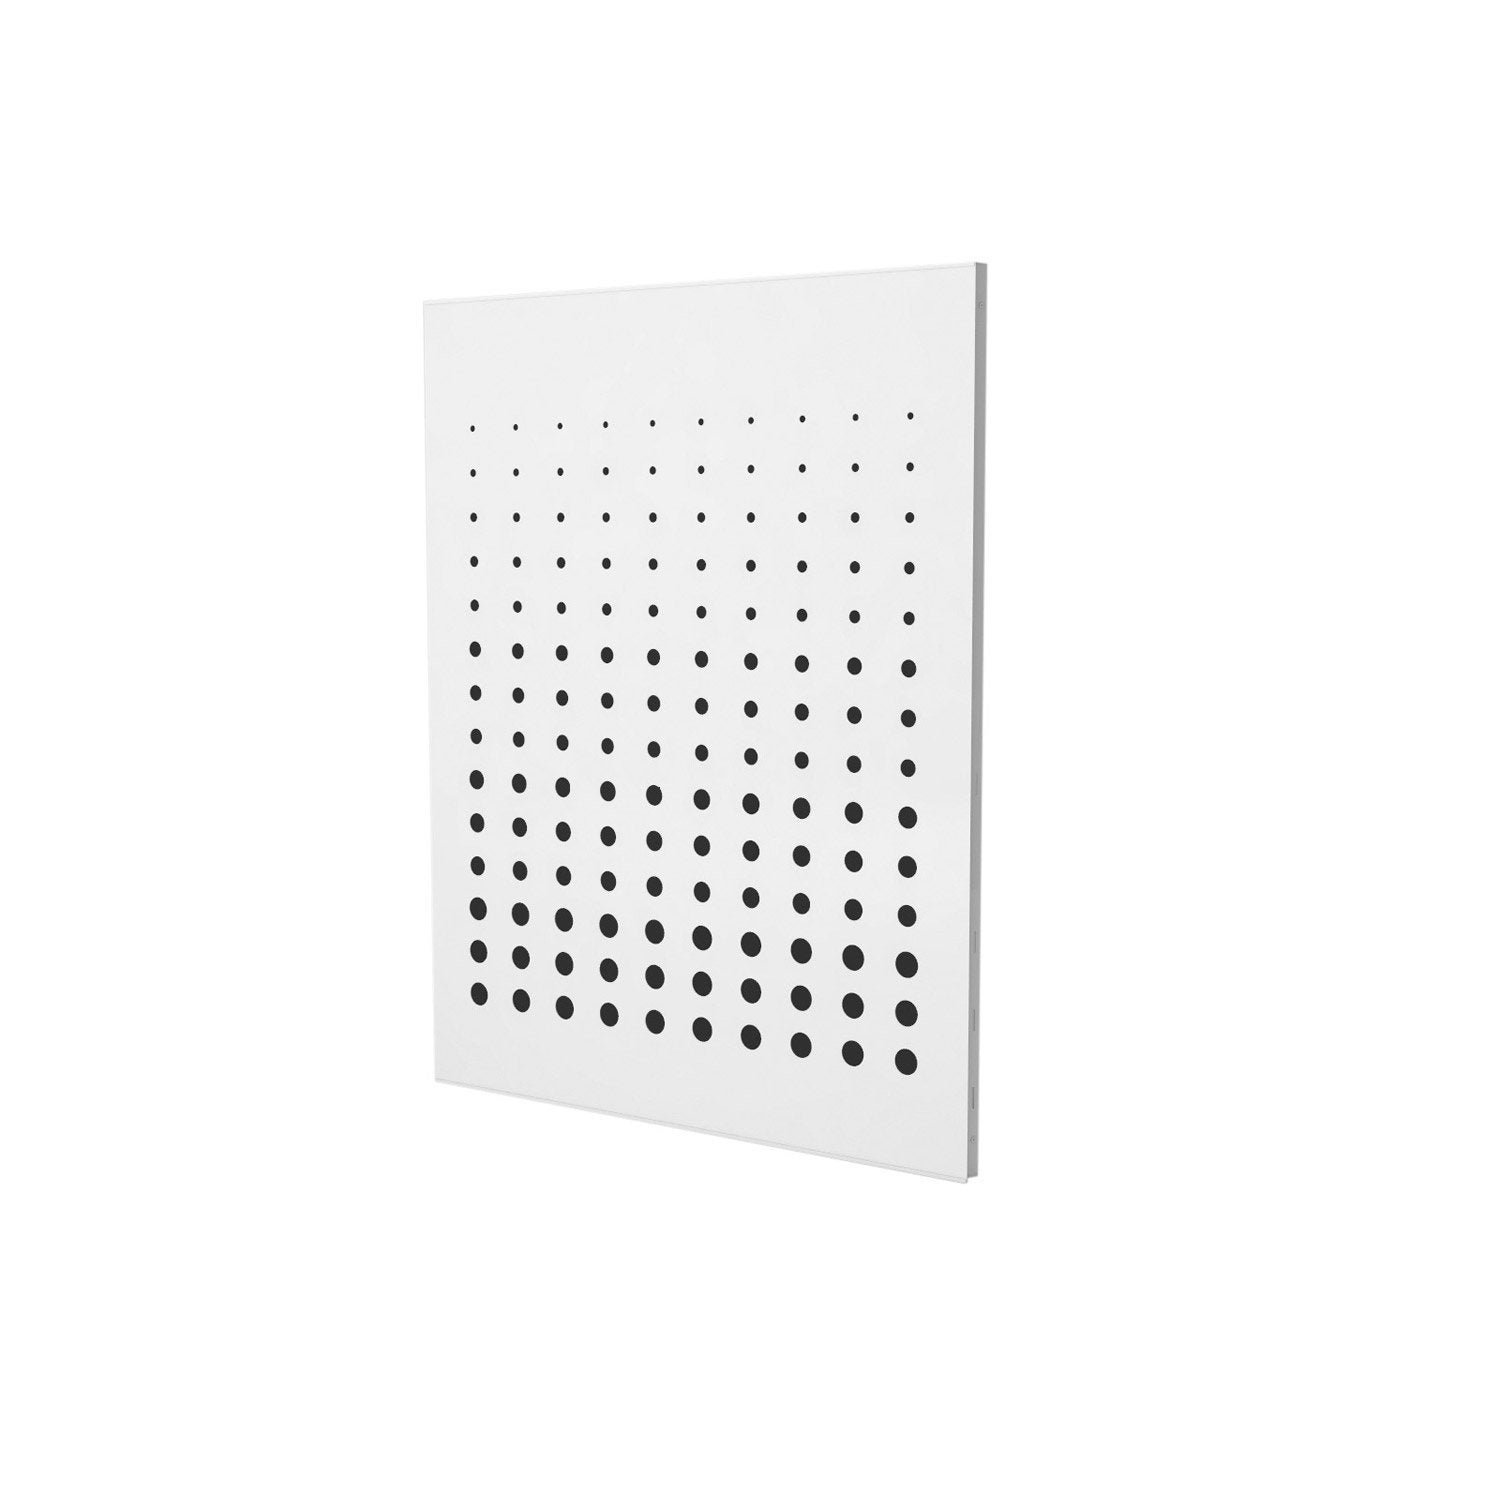 Plaque de protection murale coloris blanc simetria x leroy merlin - Plaque formica leroy merlin ...